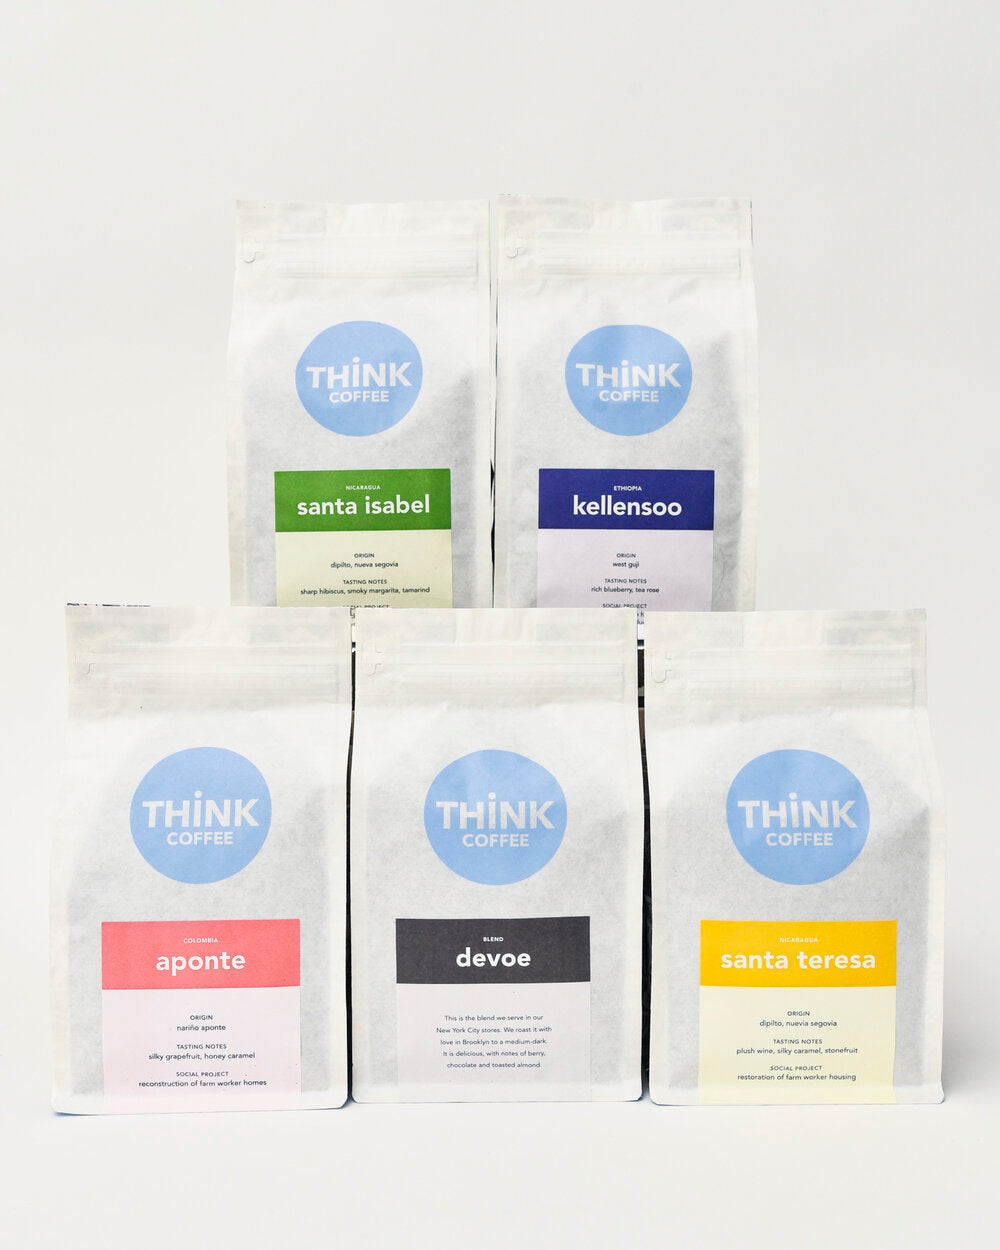 Think Coffee bags from monthly subscription